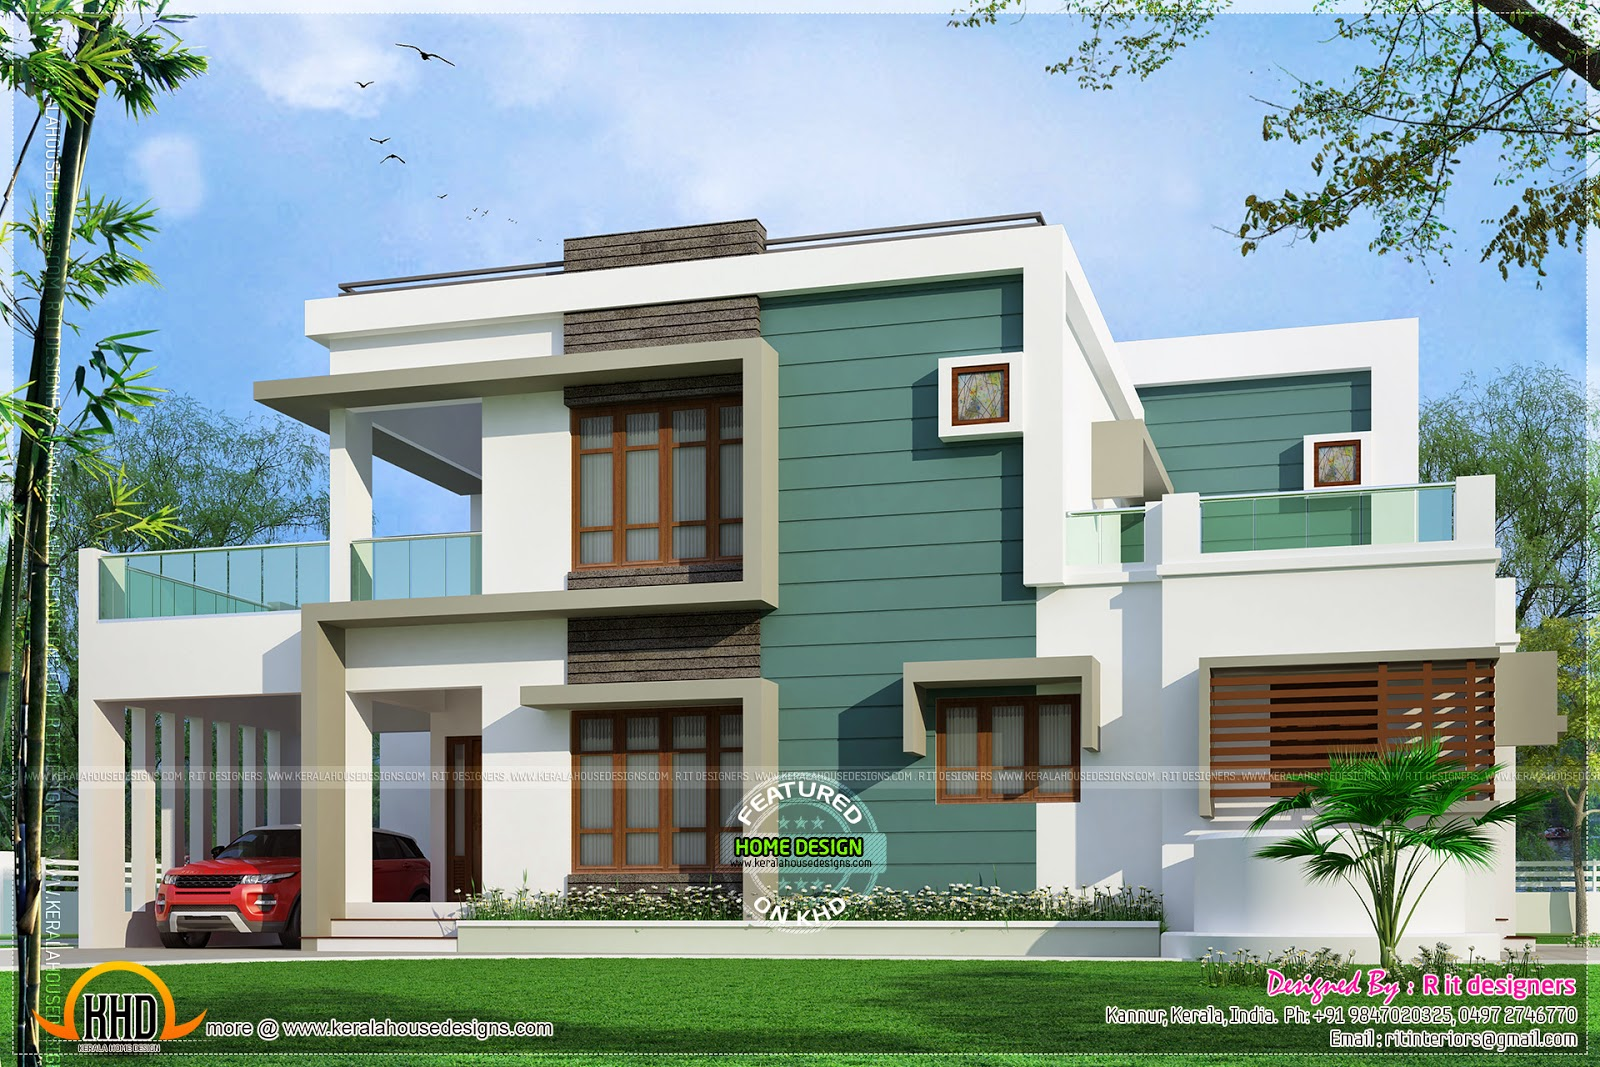 Kannur home design kerala home design and floor plans for Home design images modern